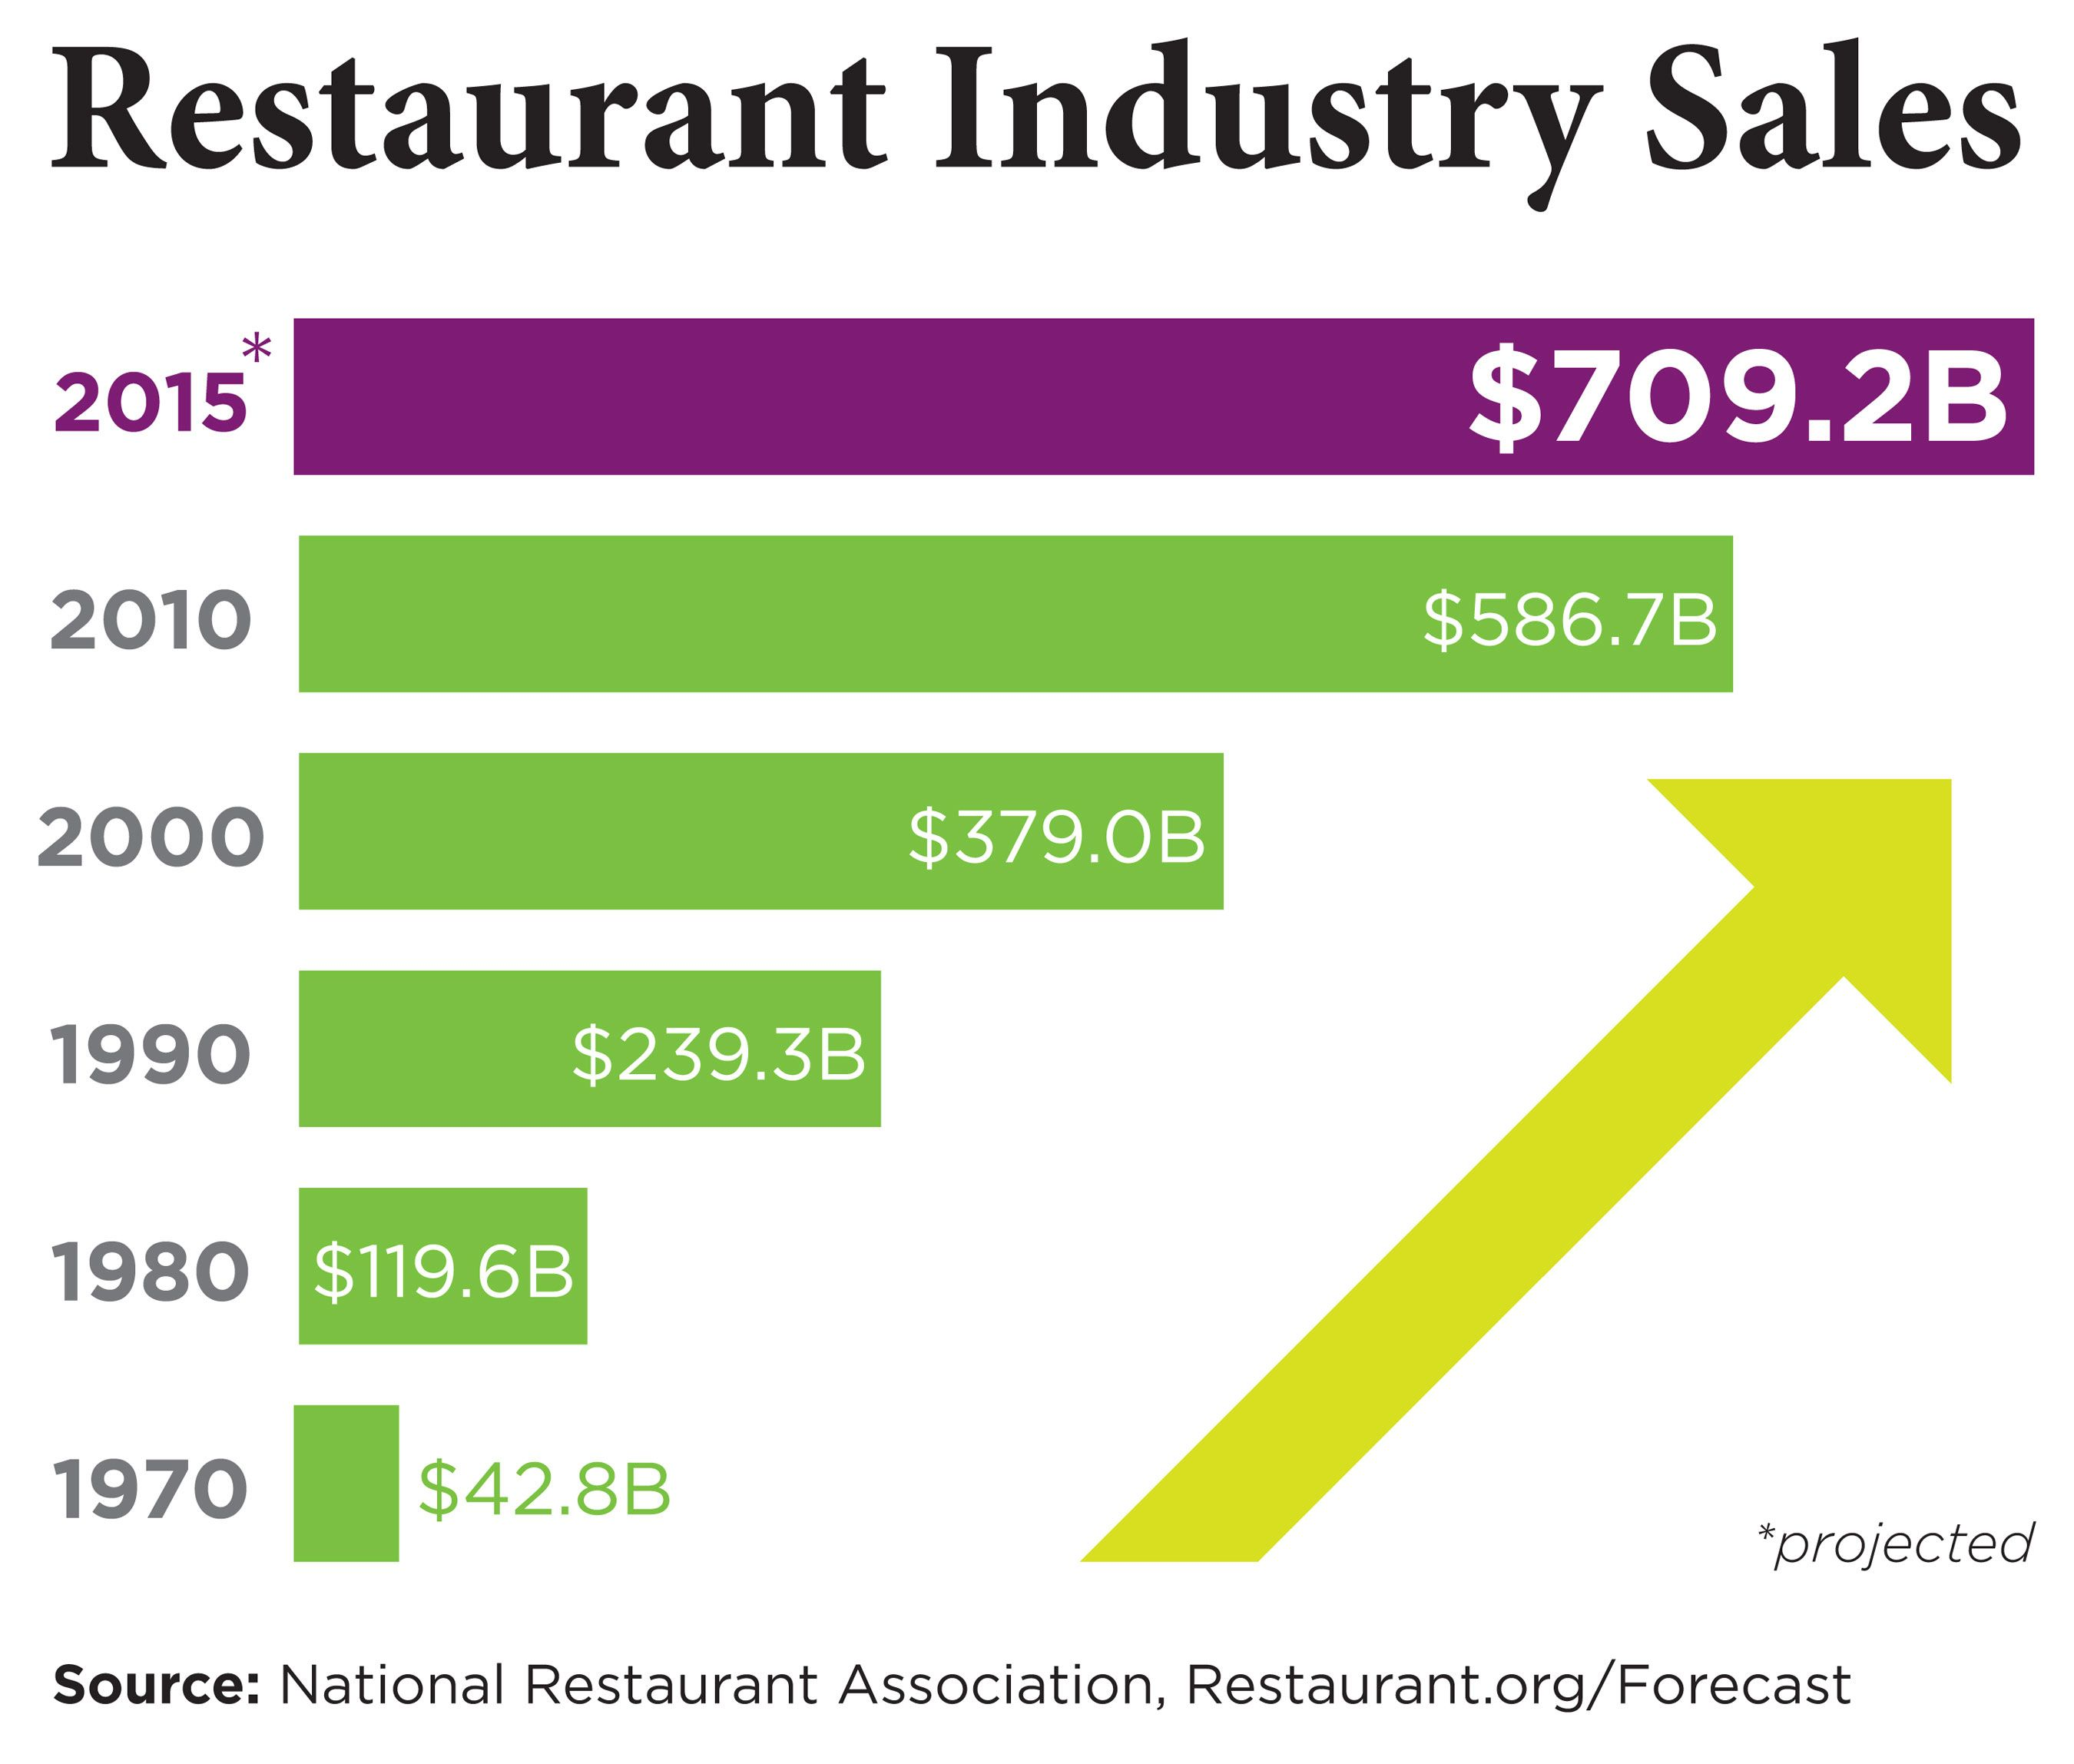 Restaurant Industry Enters Th Consecutive Year Of Growth